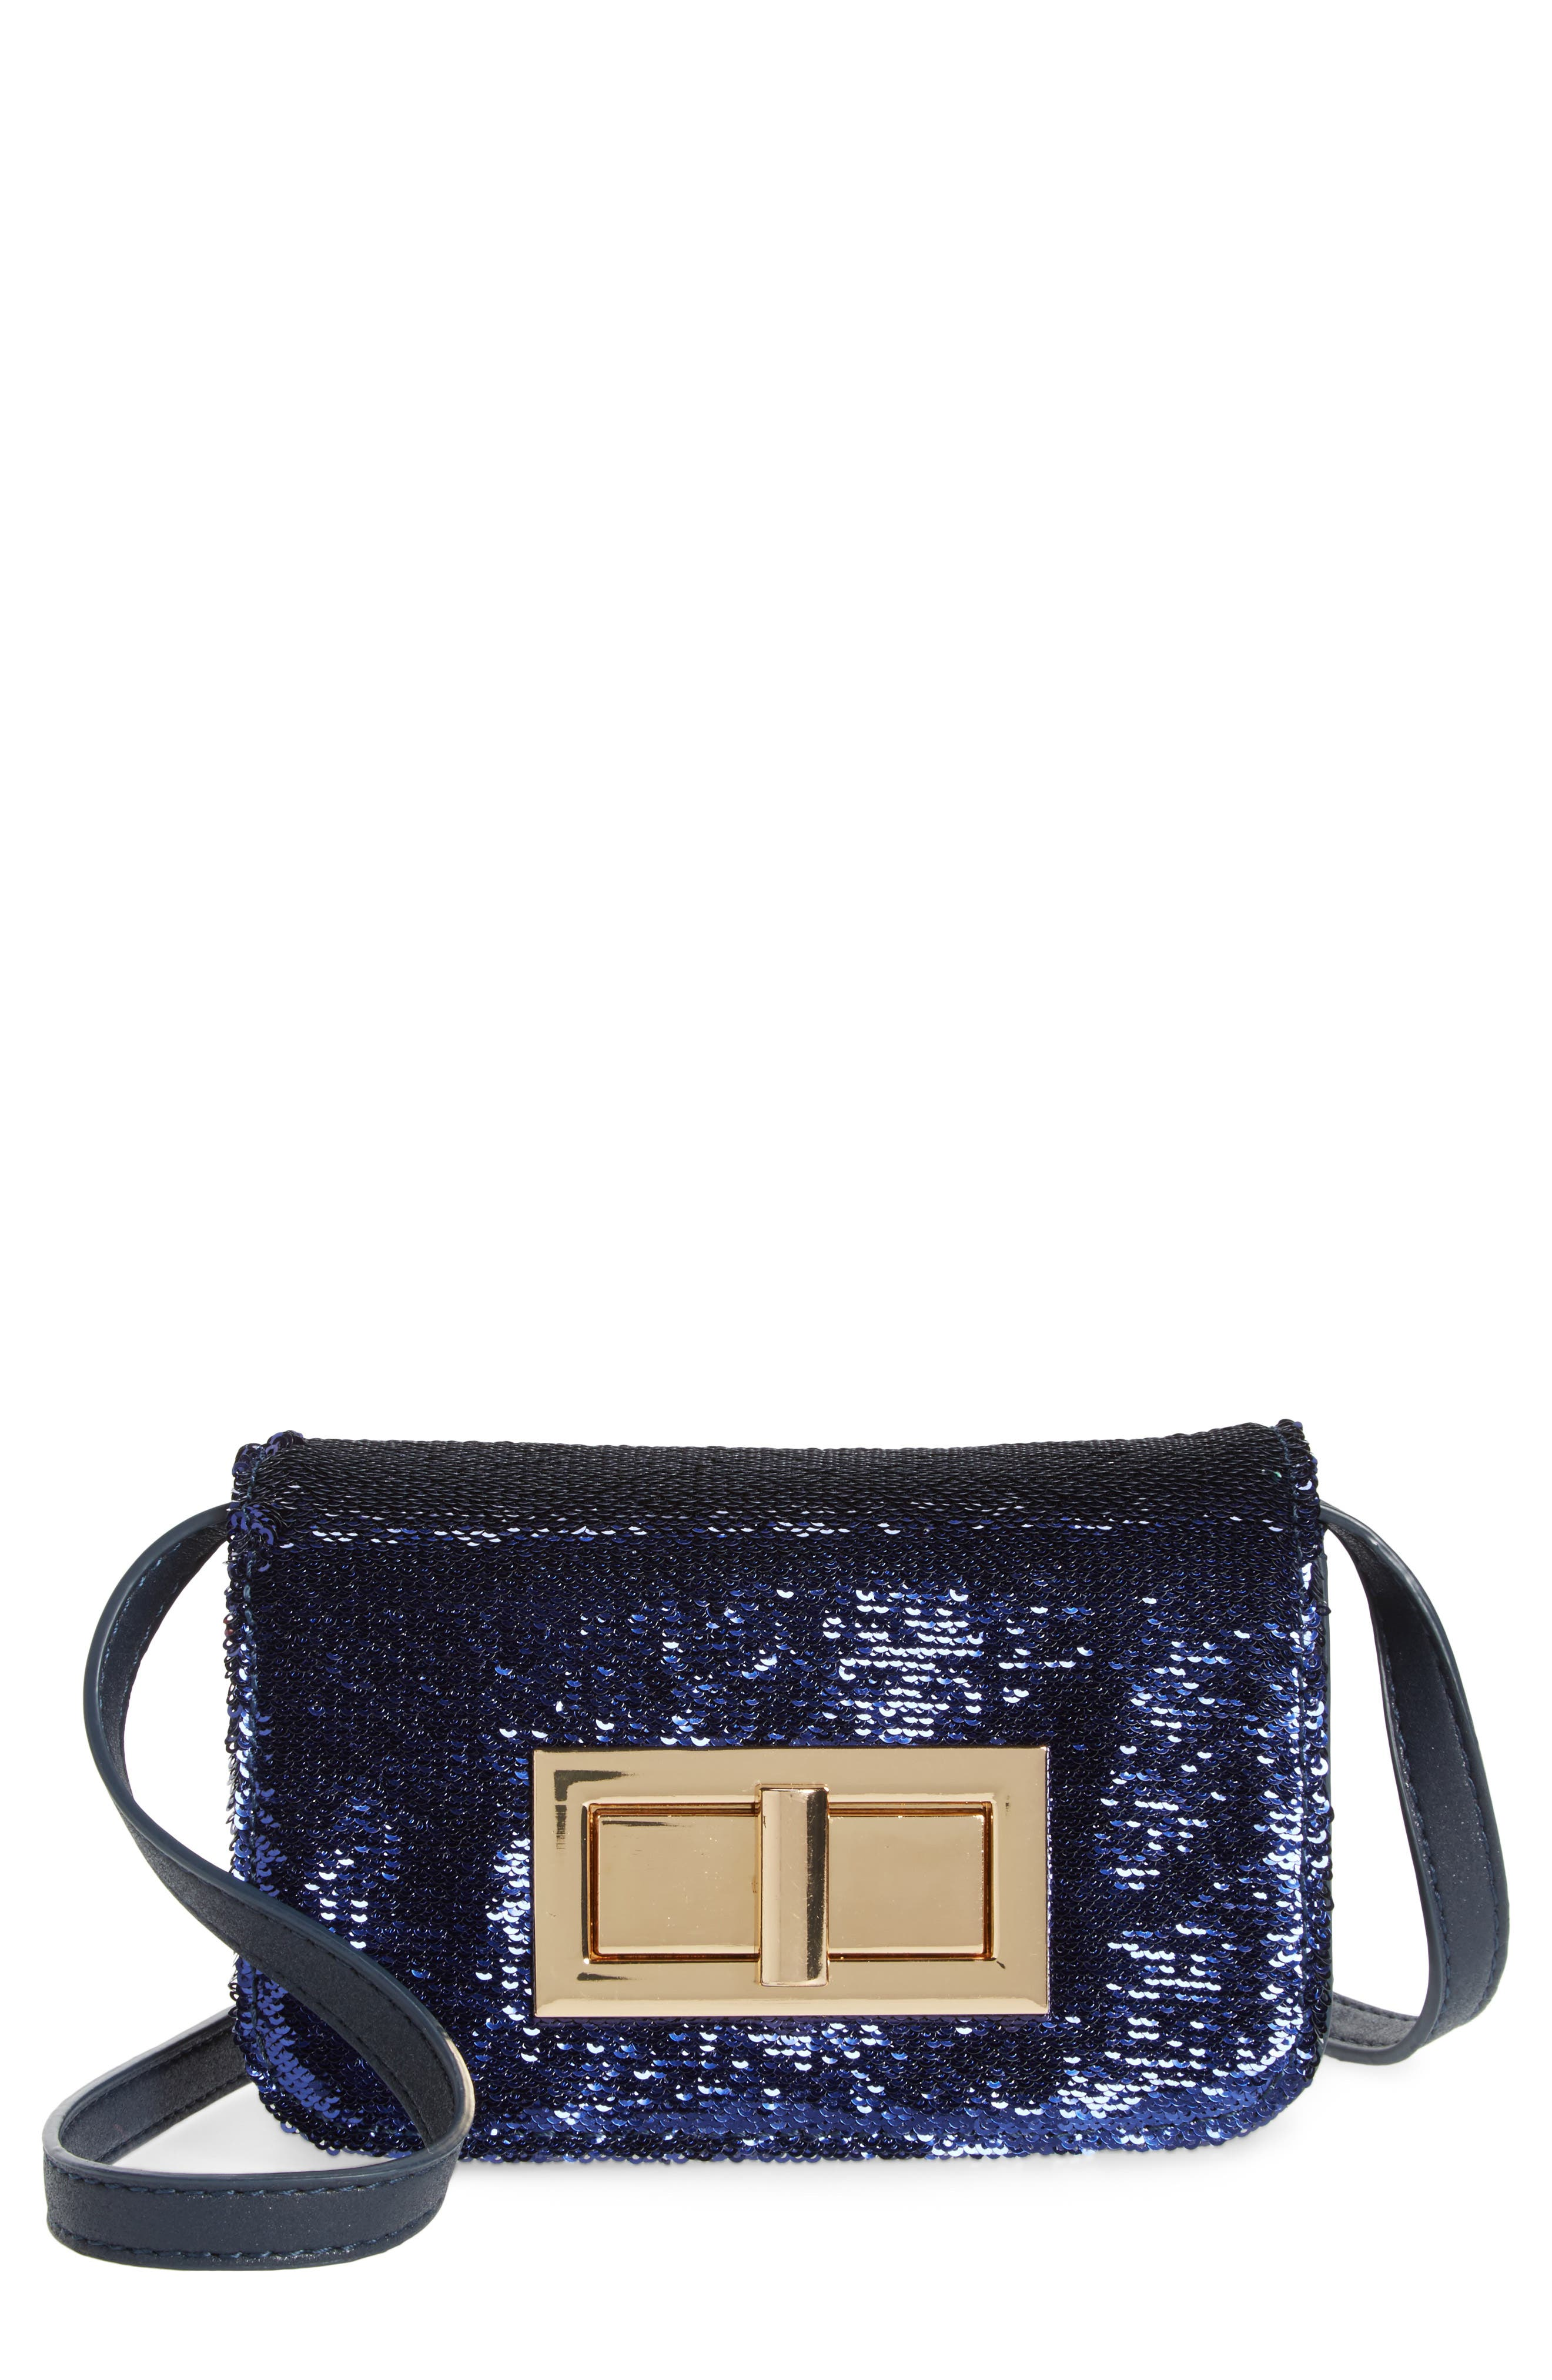 Street Level Sequin Flap Crossbody Bag